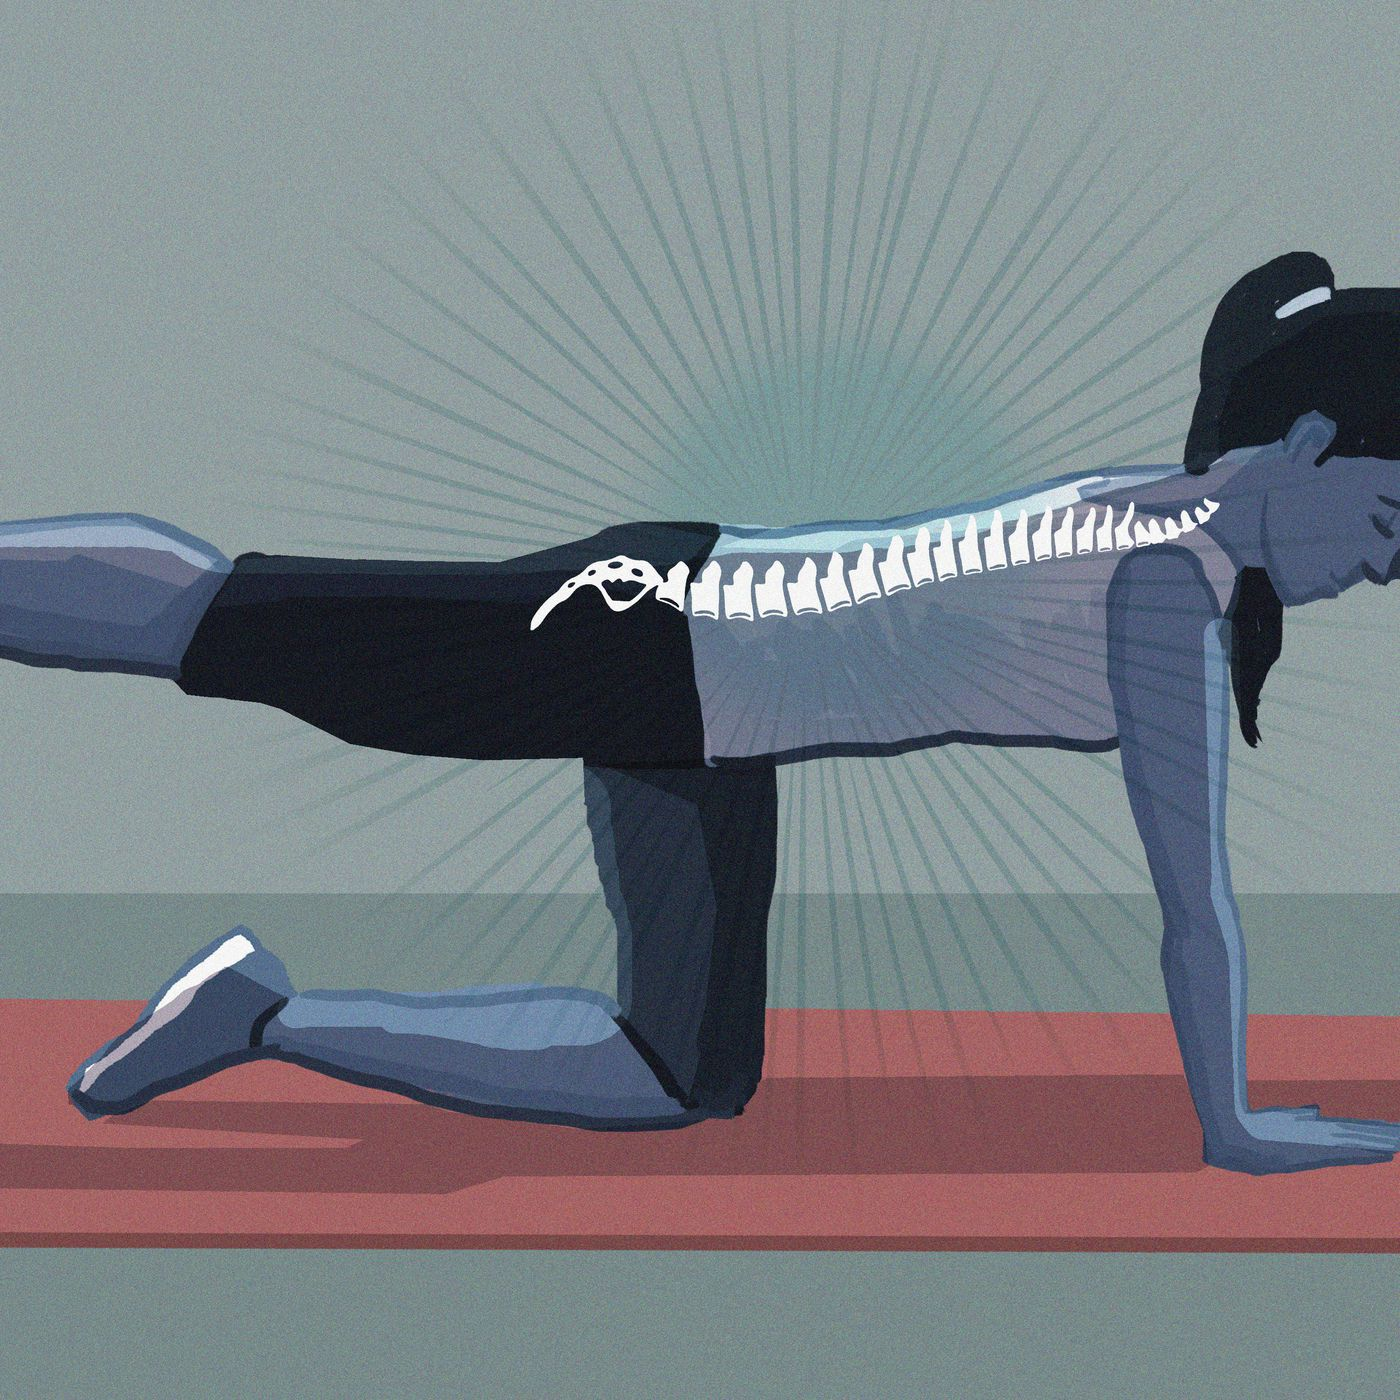 A comprehensive guide to the new science of treating lower back pain ...